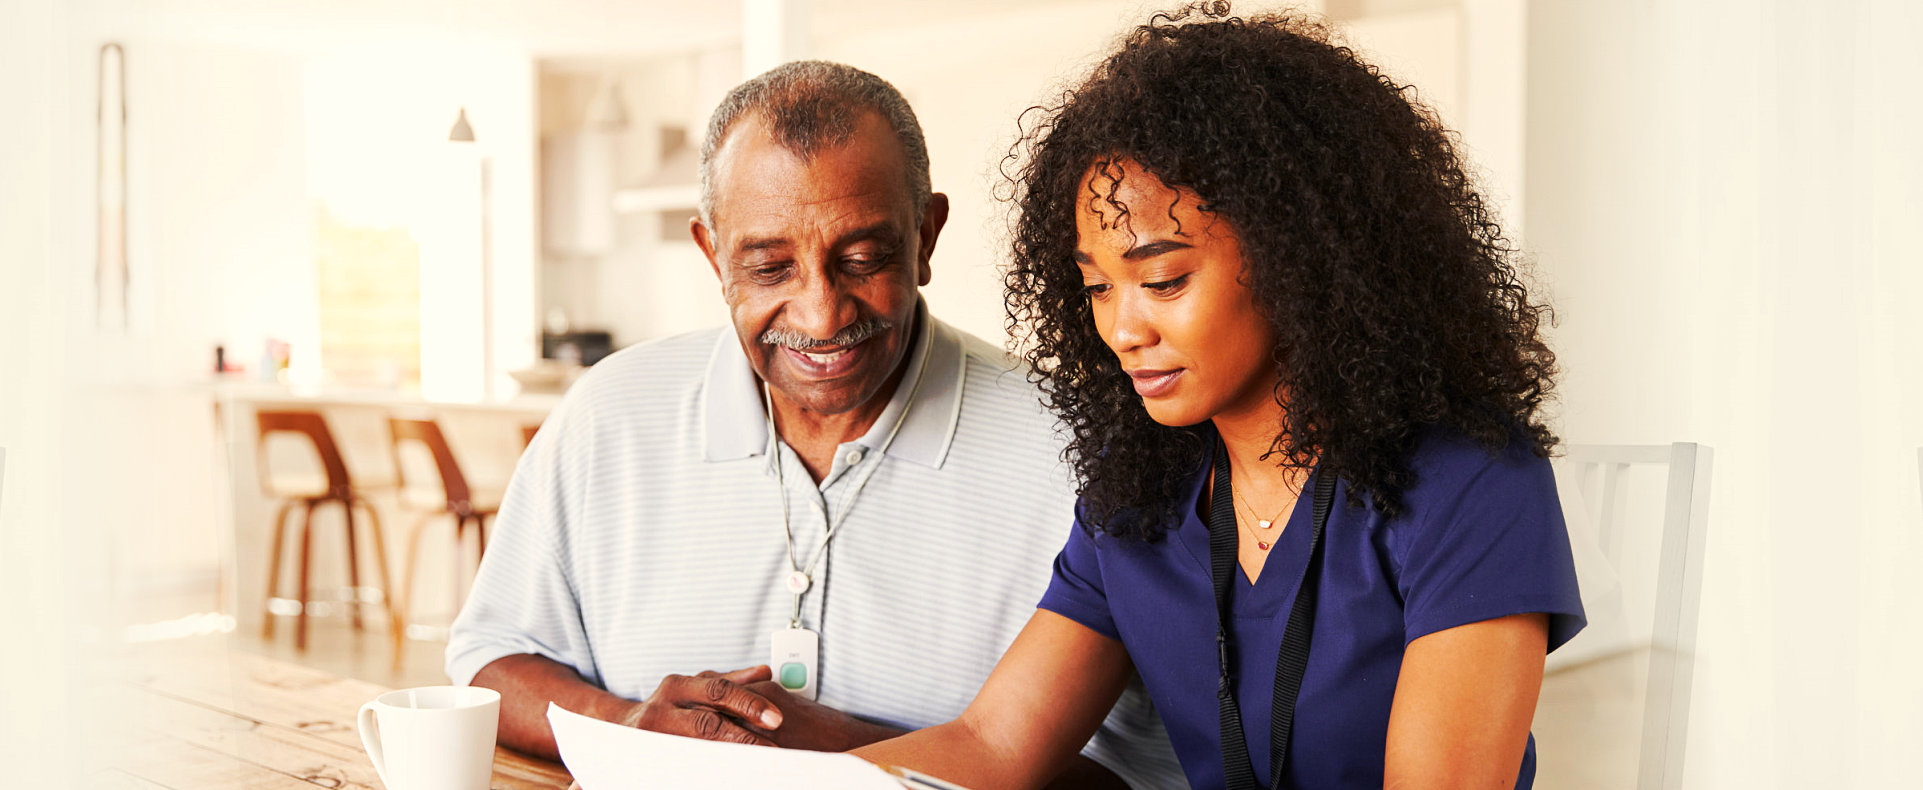 caregiver helping an elderly man with his papers